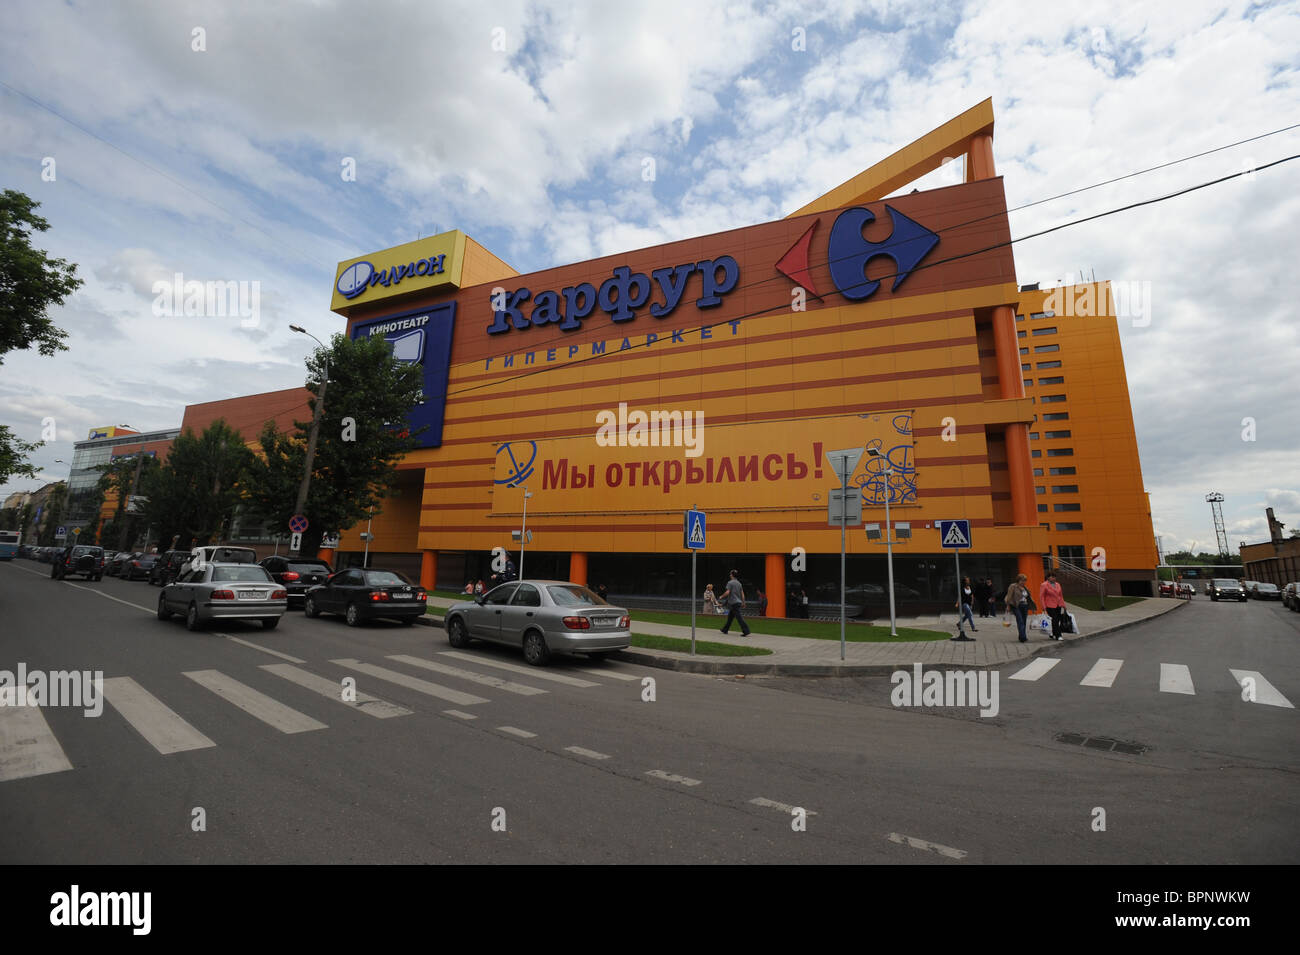 russia stock photos russia stock images alamy first carrefour hypermarket in russia and cis opens its doors in moscow stock image